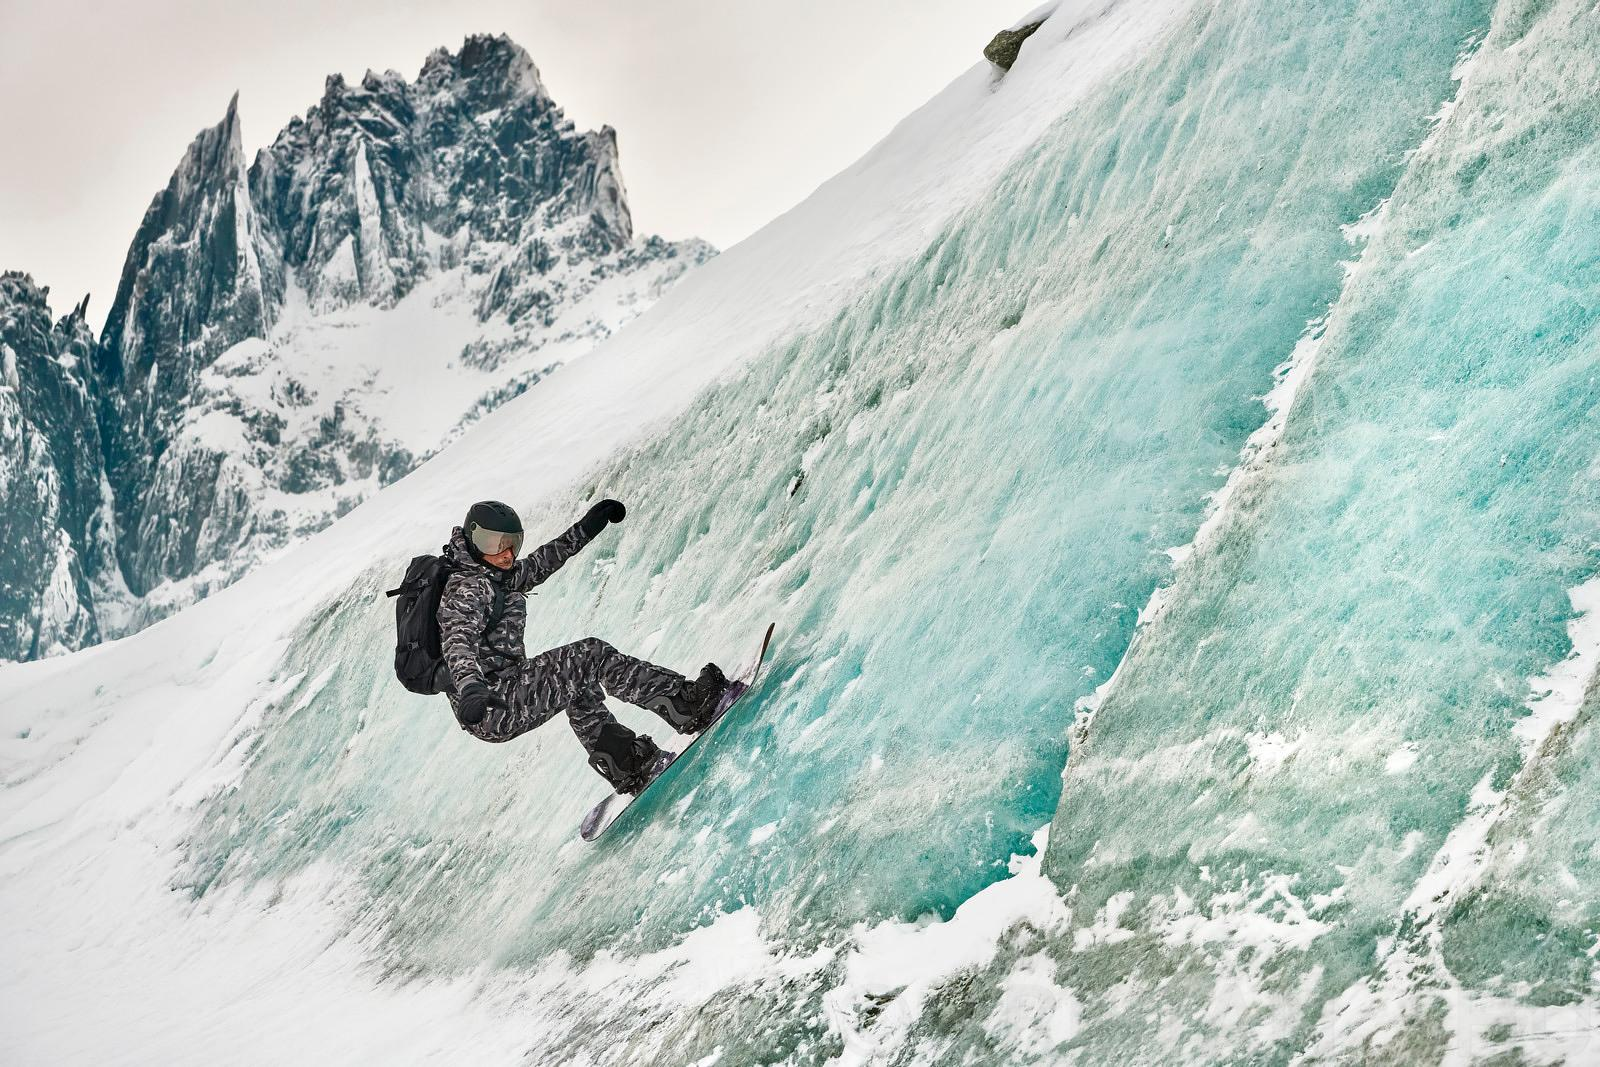 Ice Wall ride with Fabian Bodet